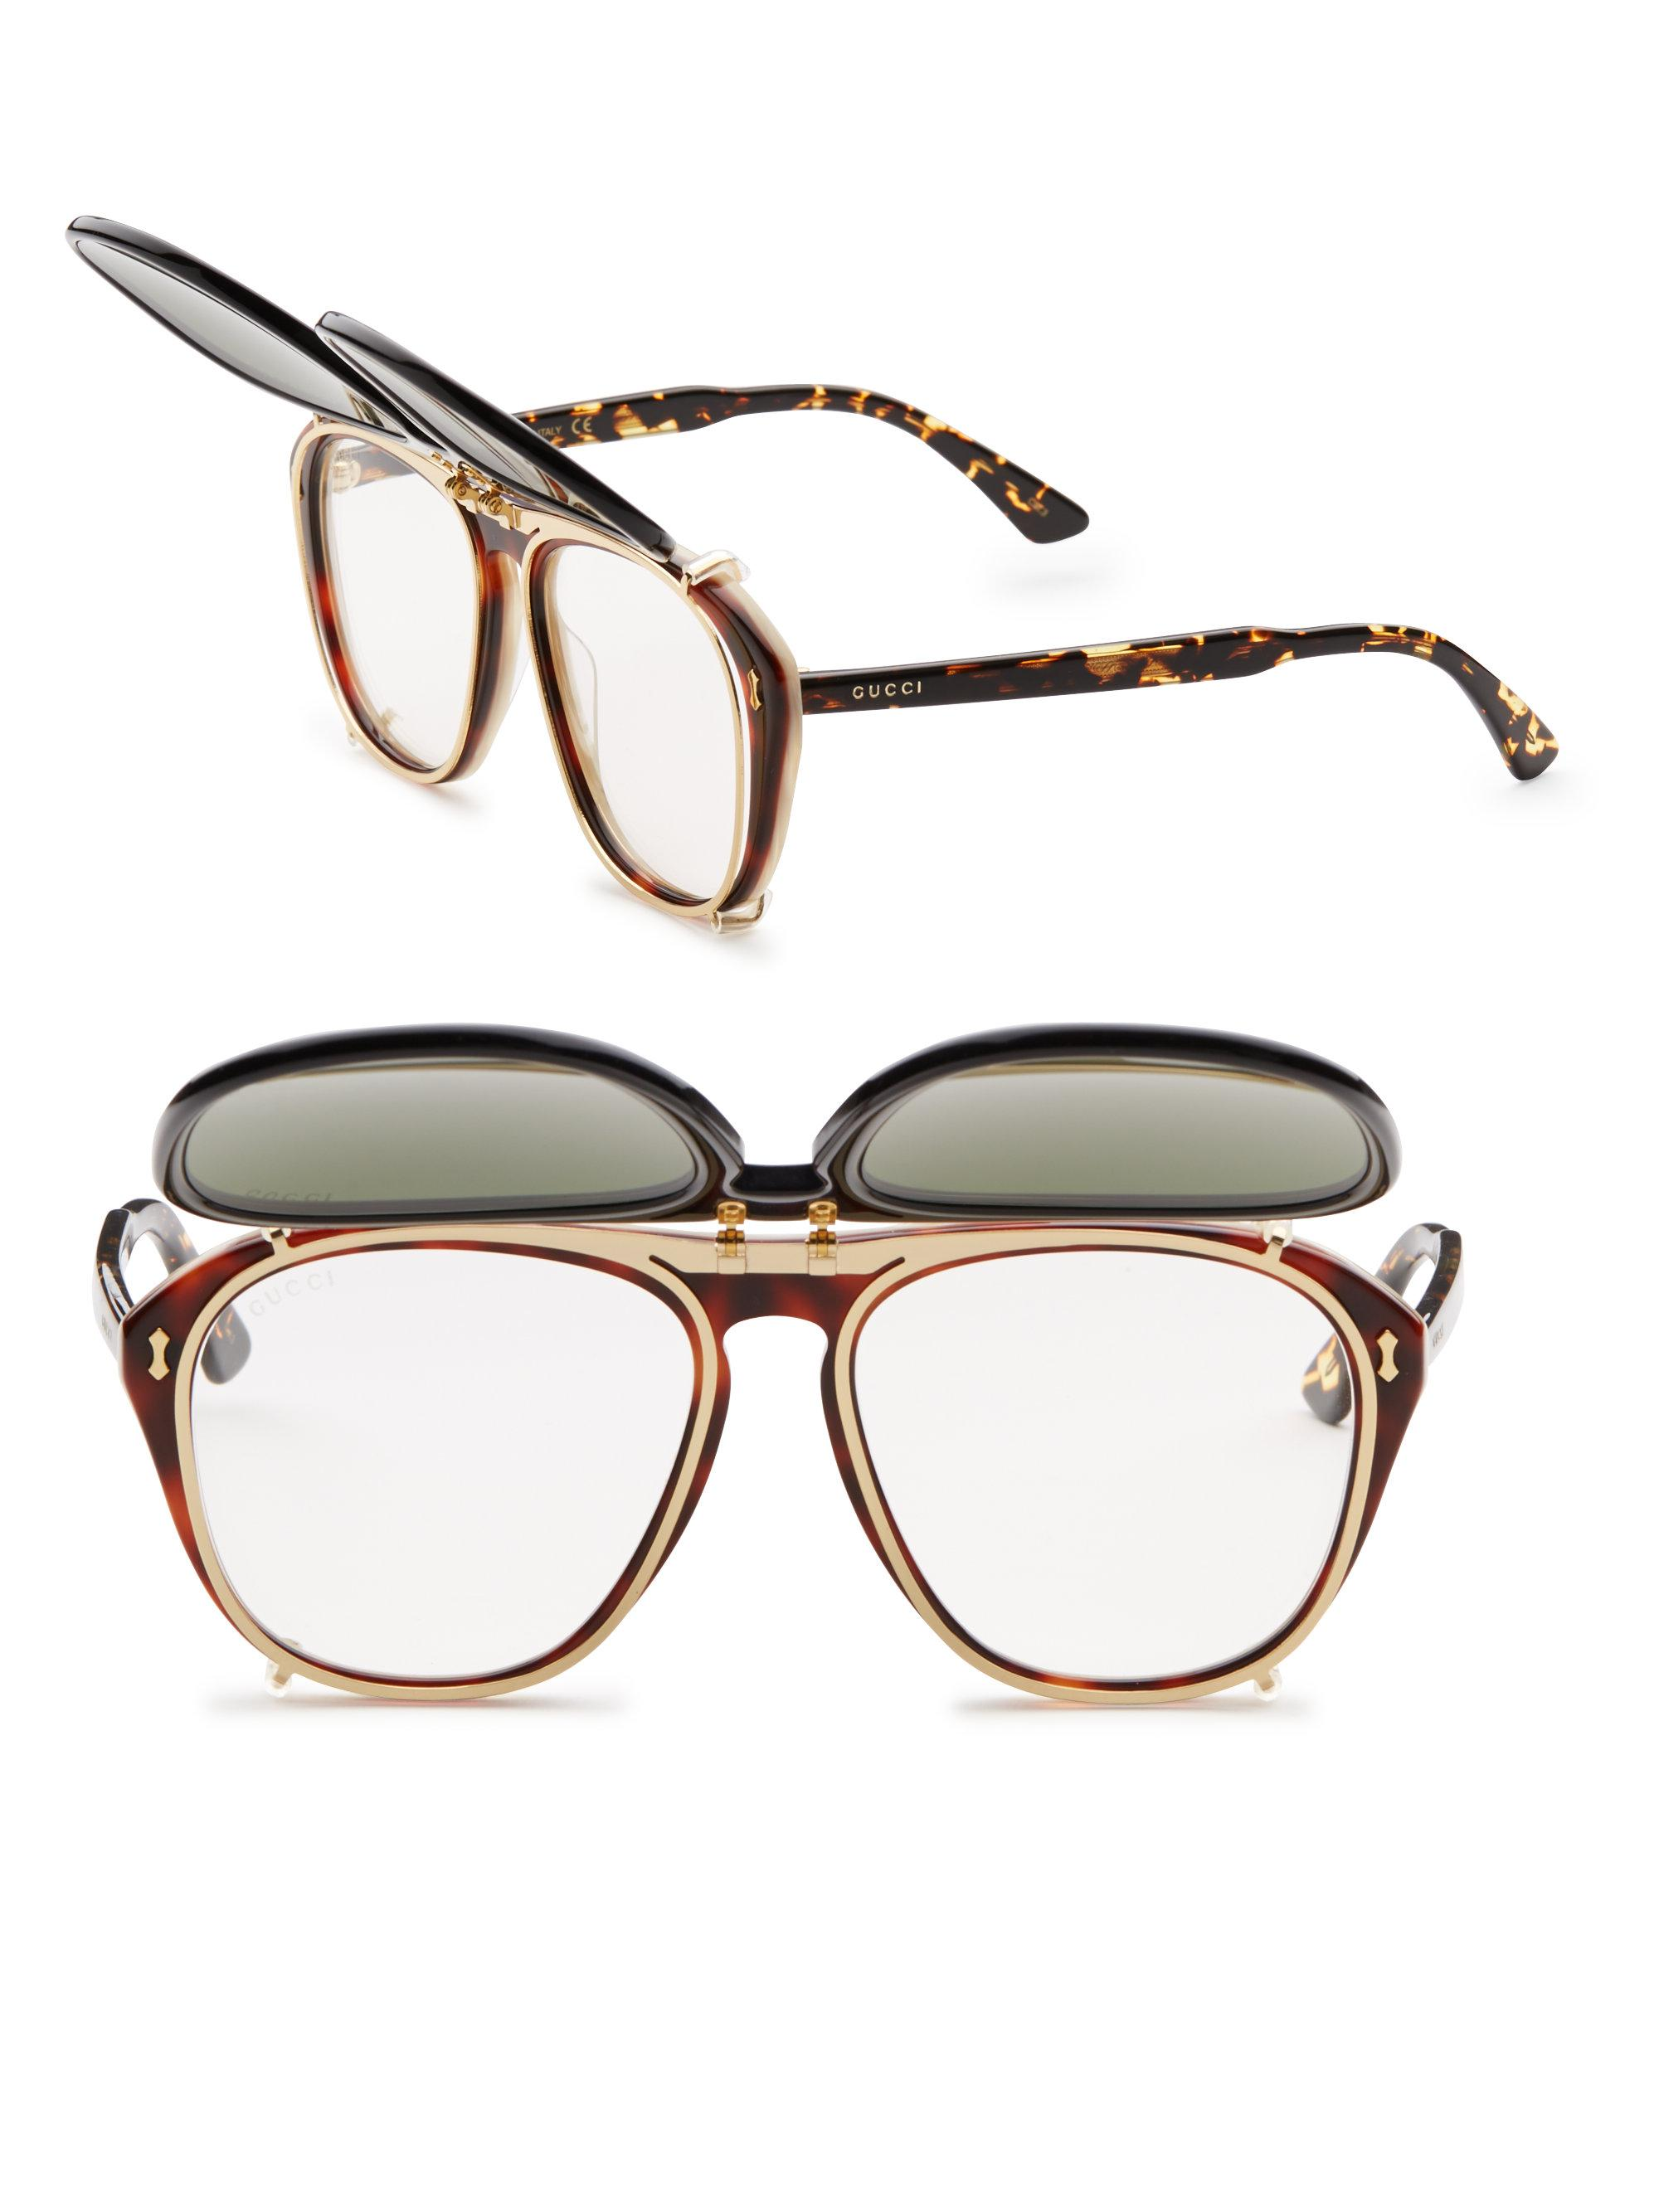 57ef46370ff Lyst - Gucci 56mm Clip-on Frame Sunglasses for Men